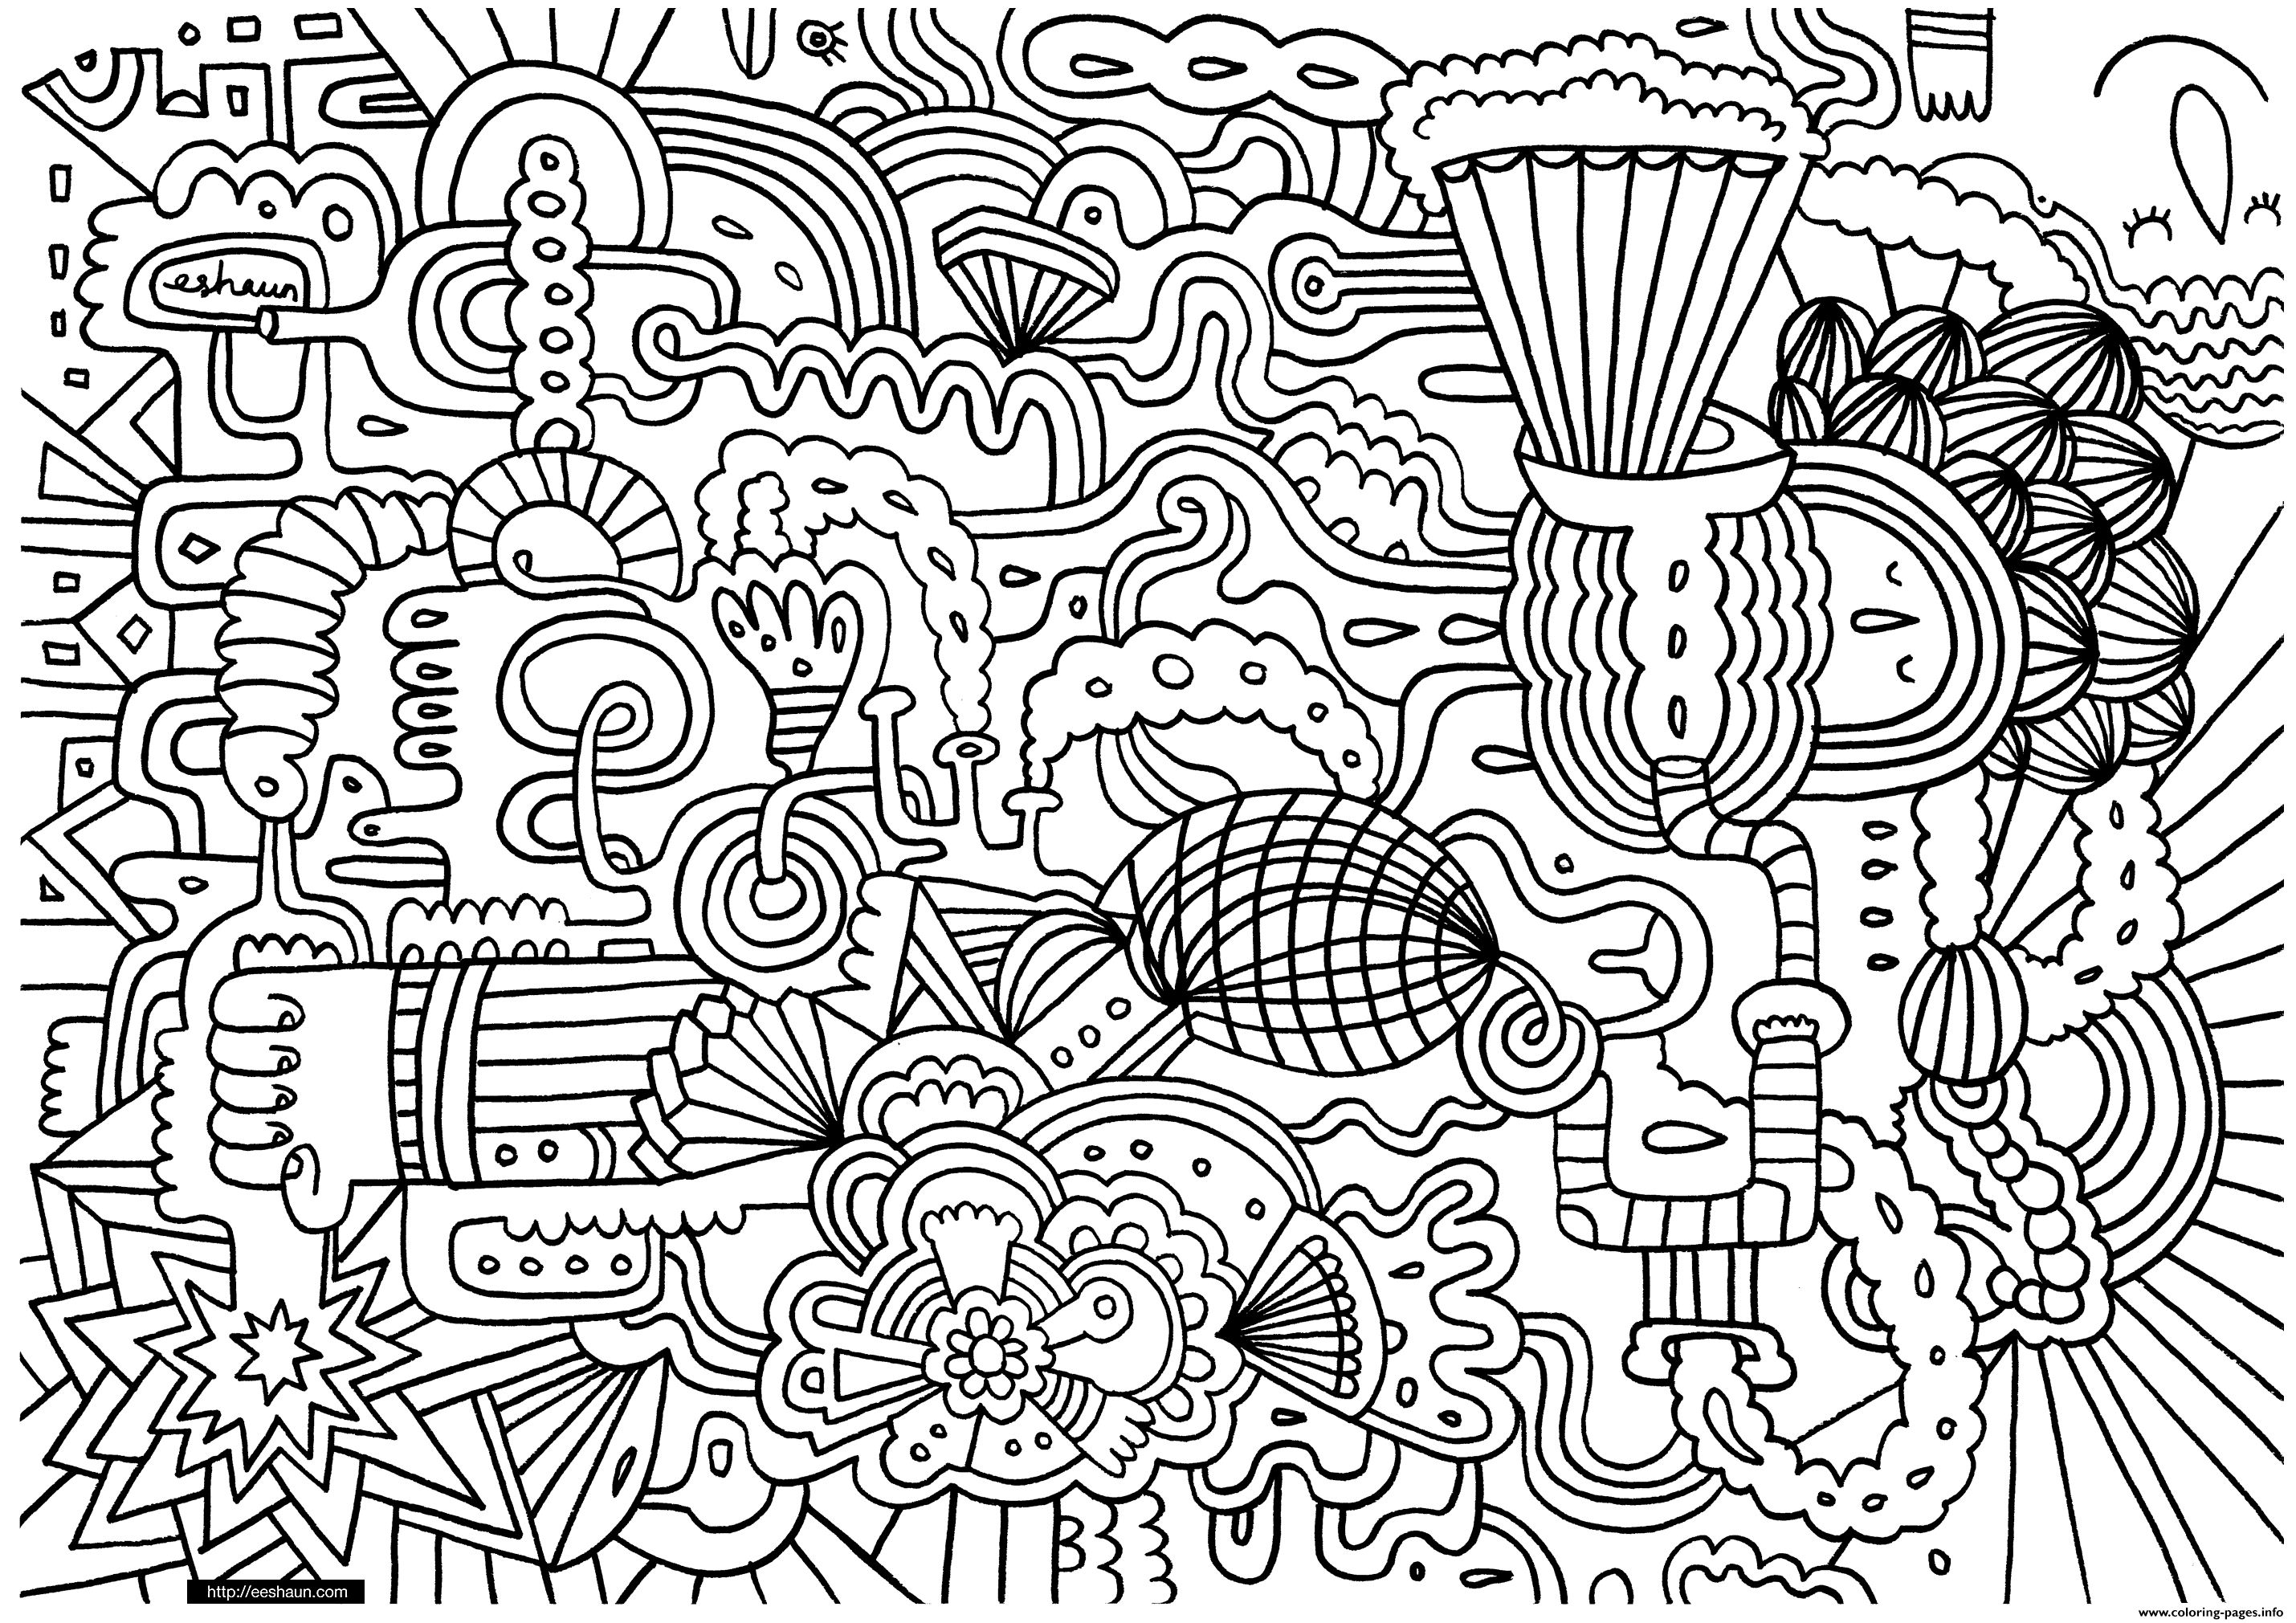 free doodle art to print and color popsicle doodle coloring page printable cutekawaii coloring color art to print and doodle free